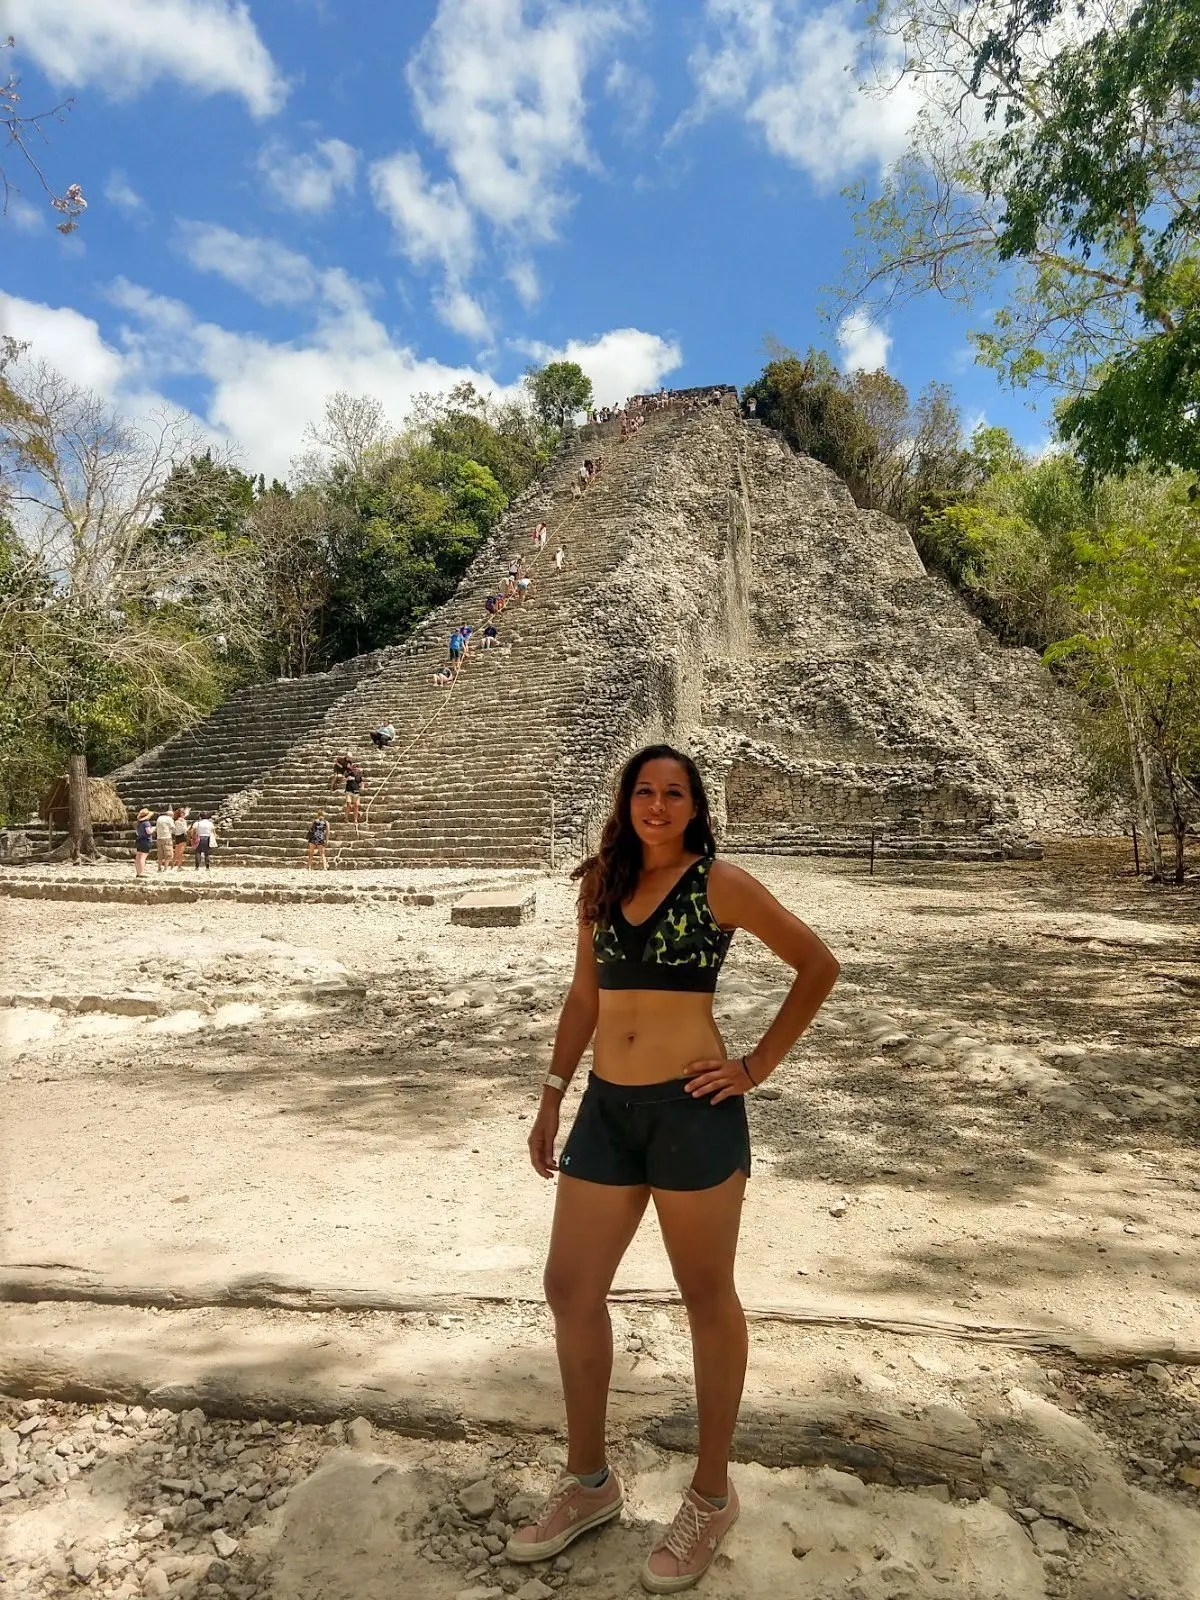 Sarah Fay travel blogger in front of Coba Ruins and Pyramid in the Jungle.